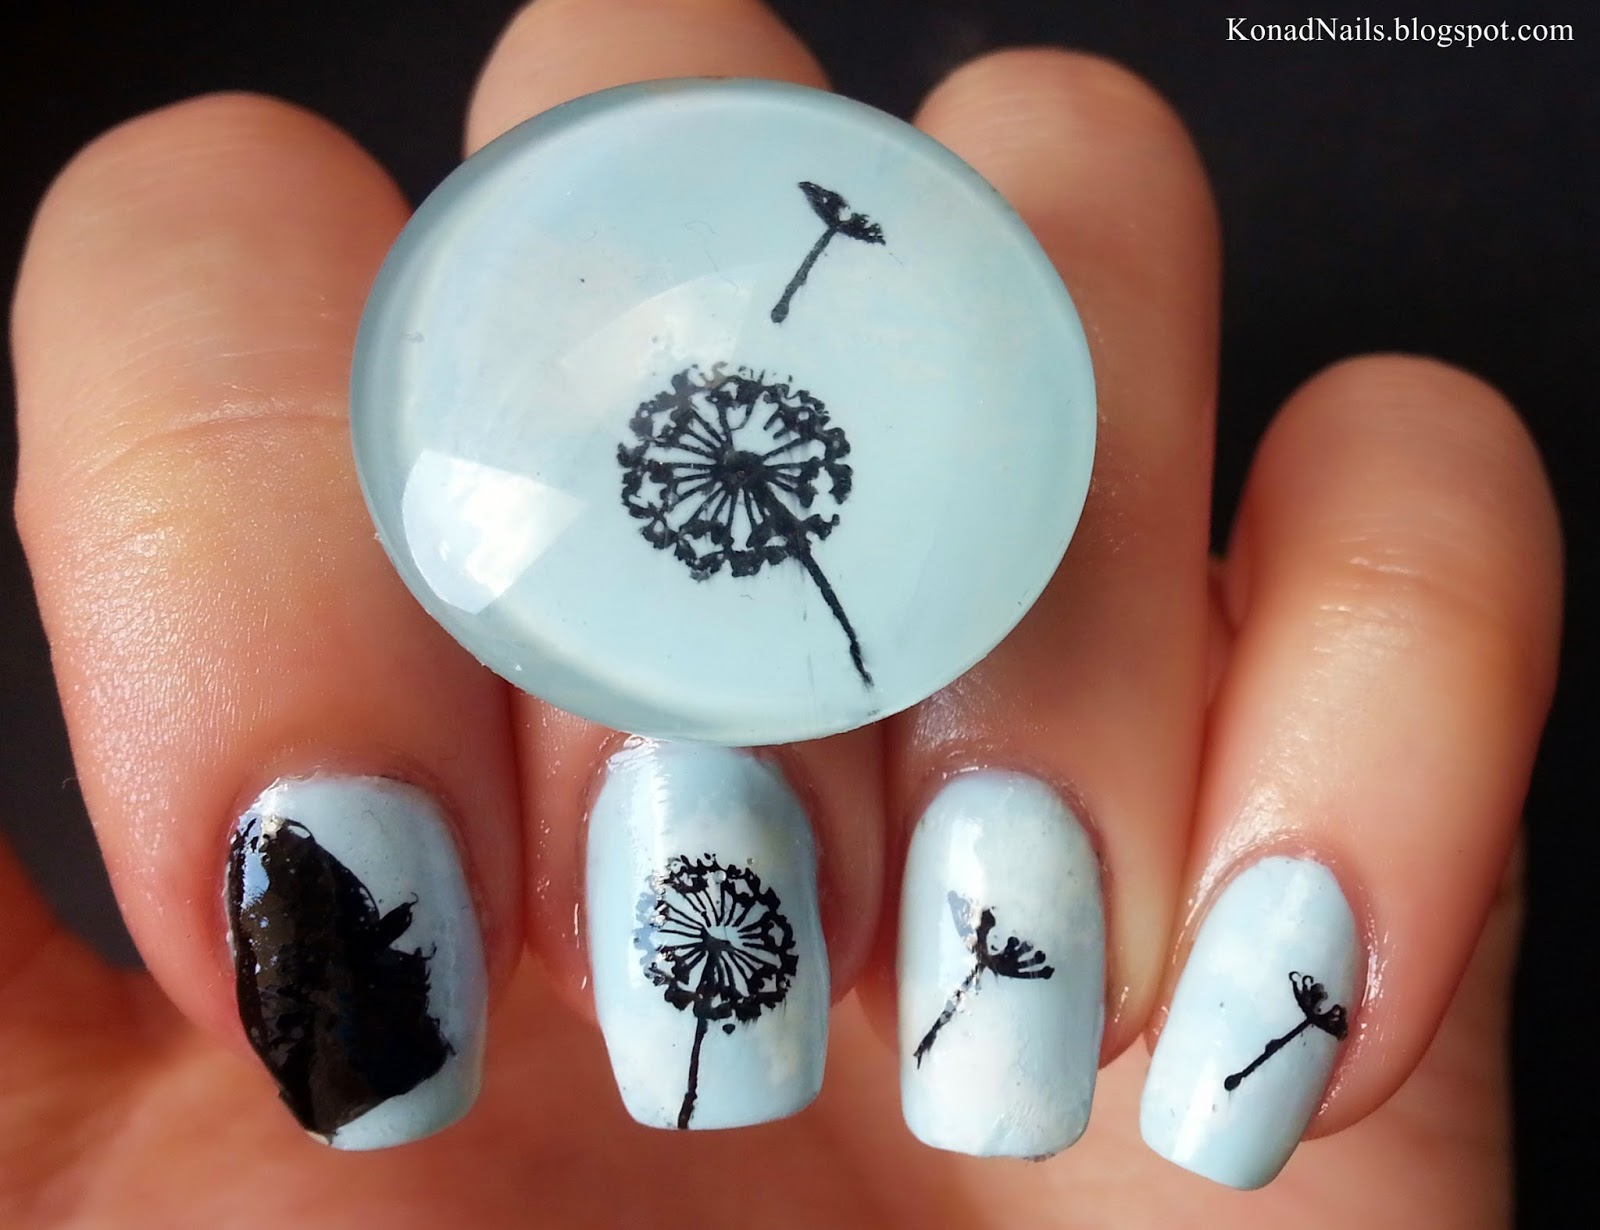 Konad addict dandelion nail art sky printed dress now id like to introduce you my new sky printed dress that matches my nails i got it from sensationofnight for a reasonable price prinsesfo Choice Image